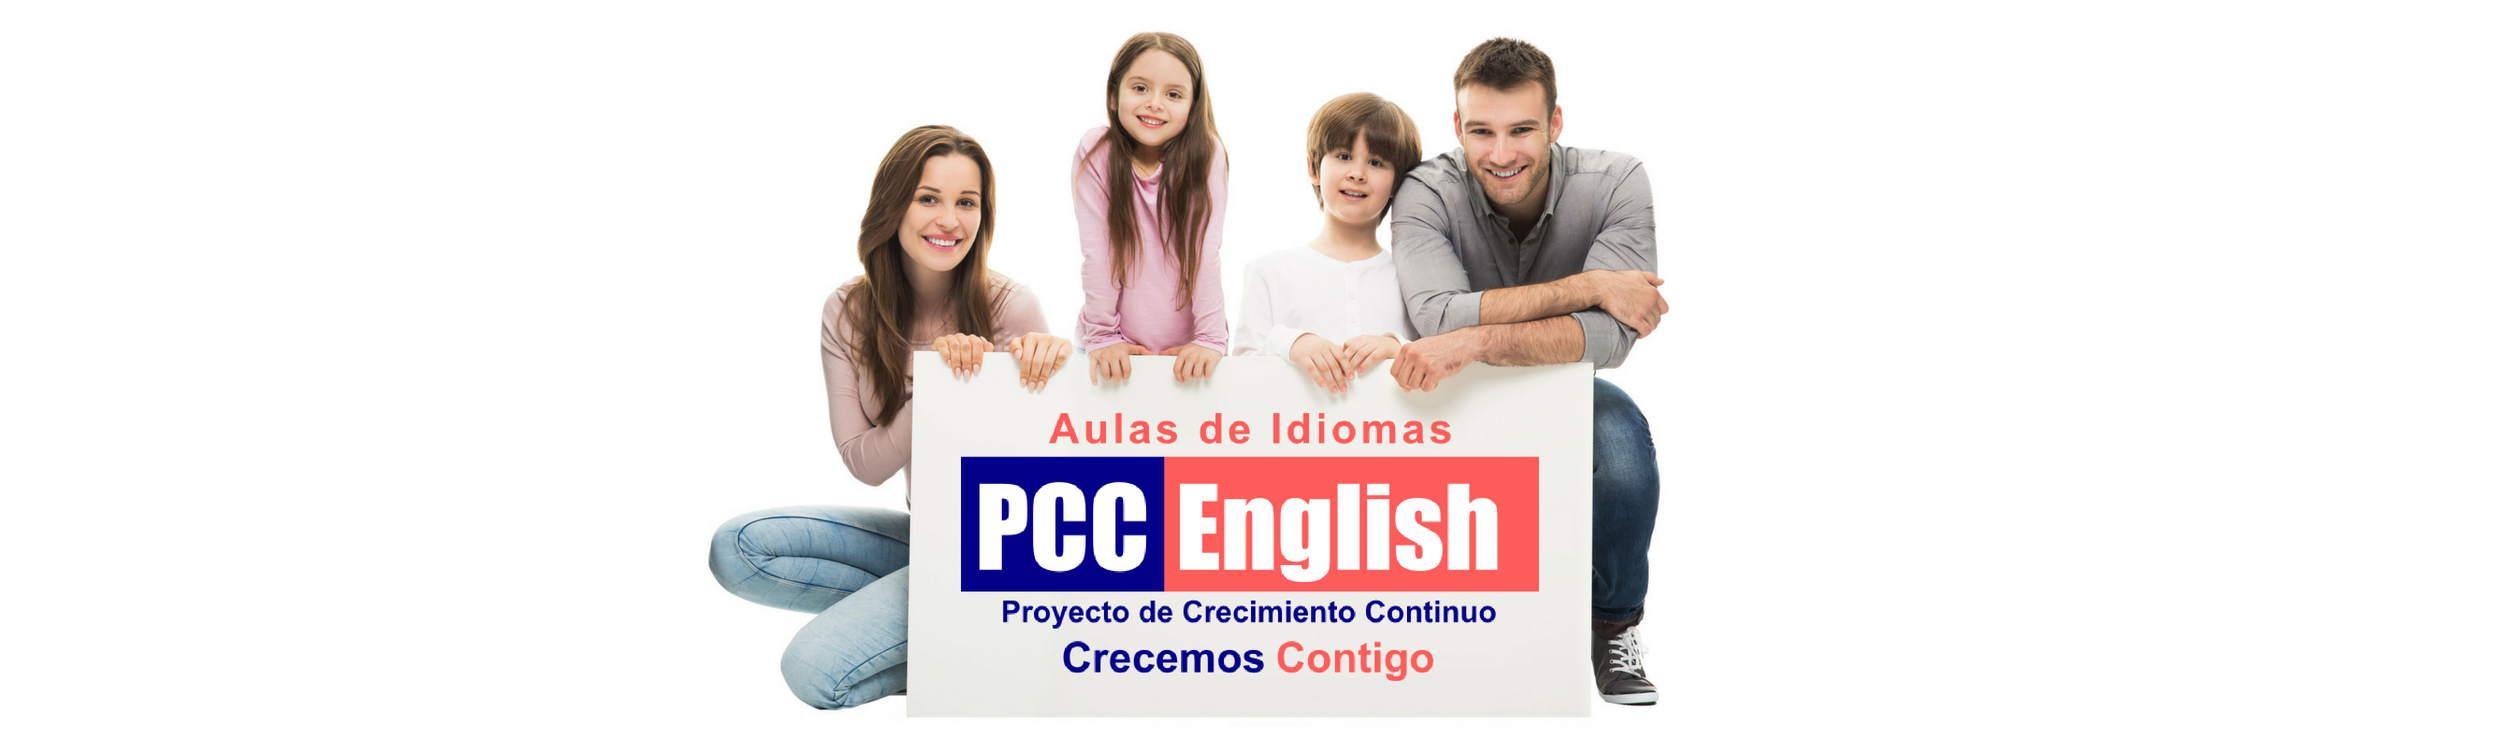 Cabecera PCC English